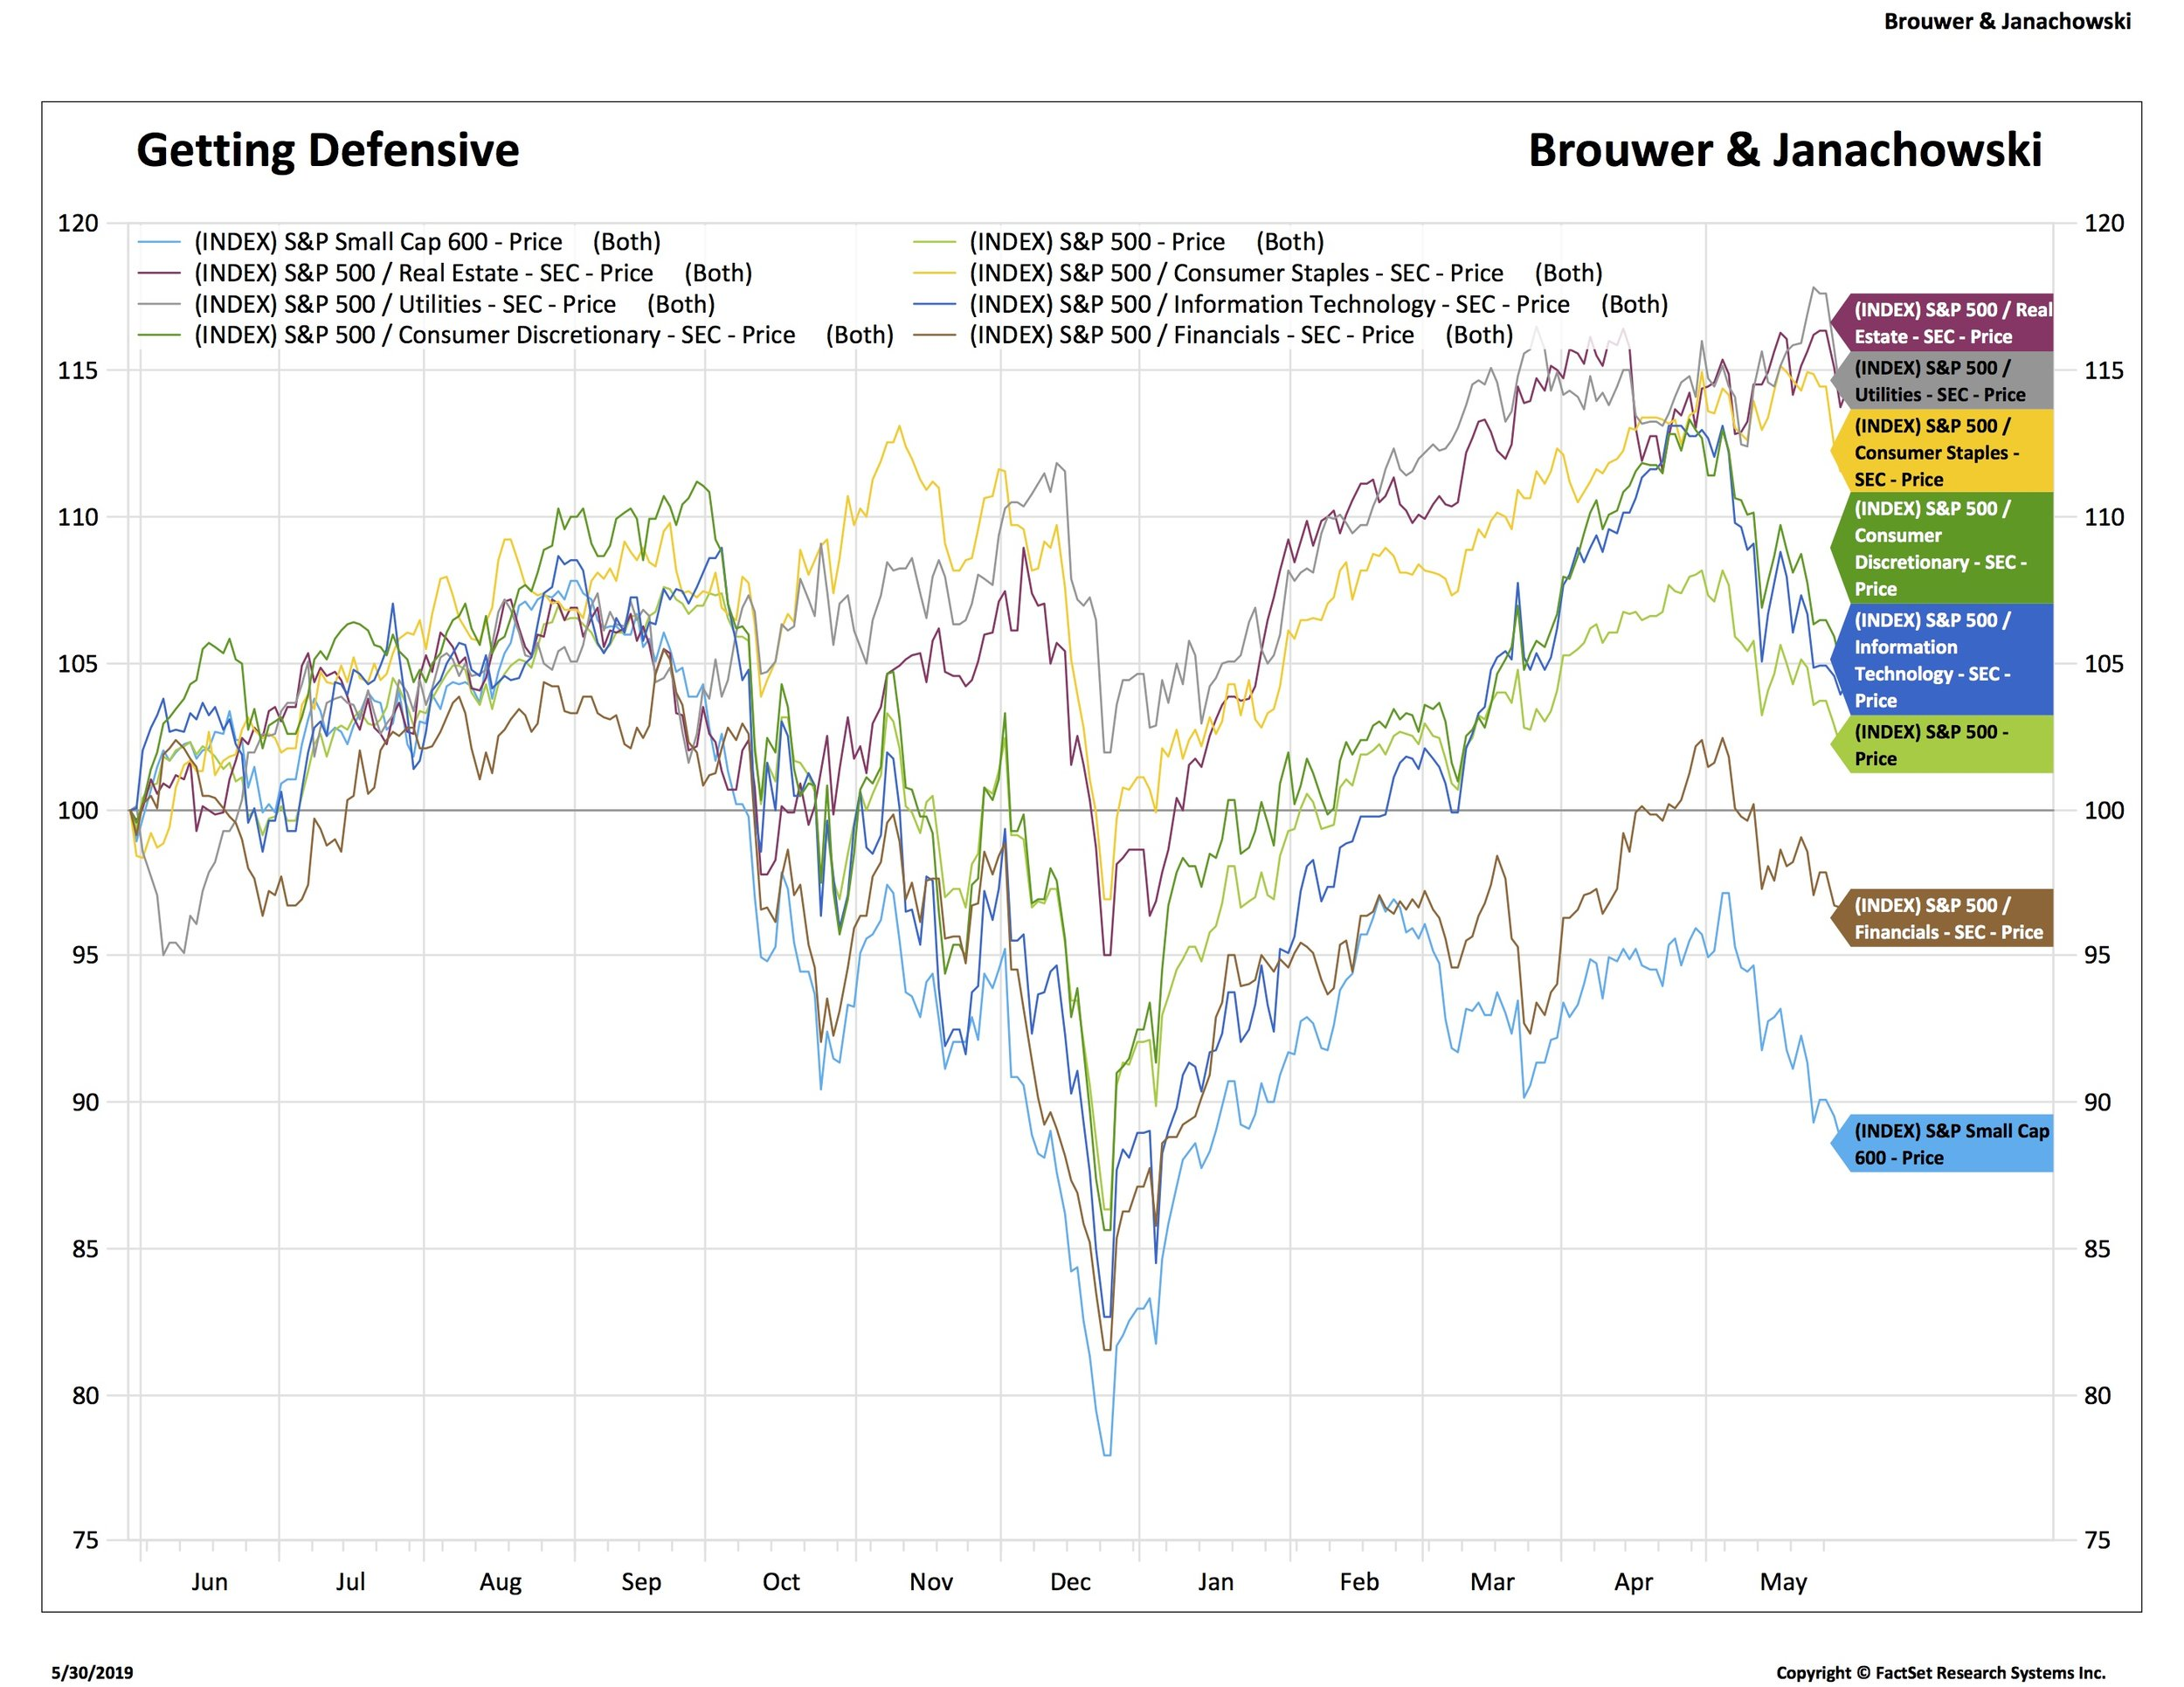 Defensive sectors have done well